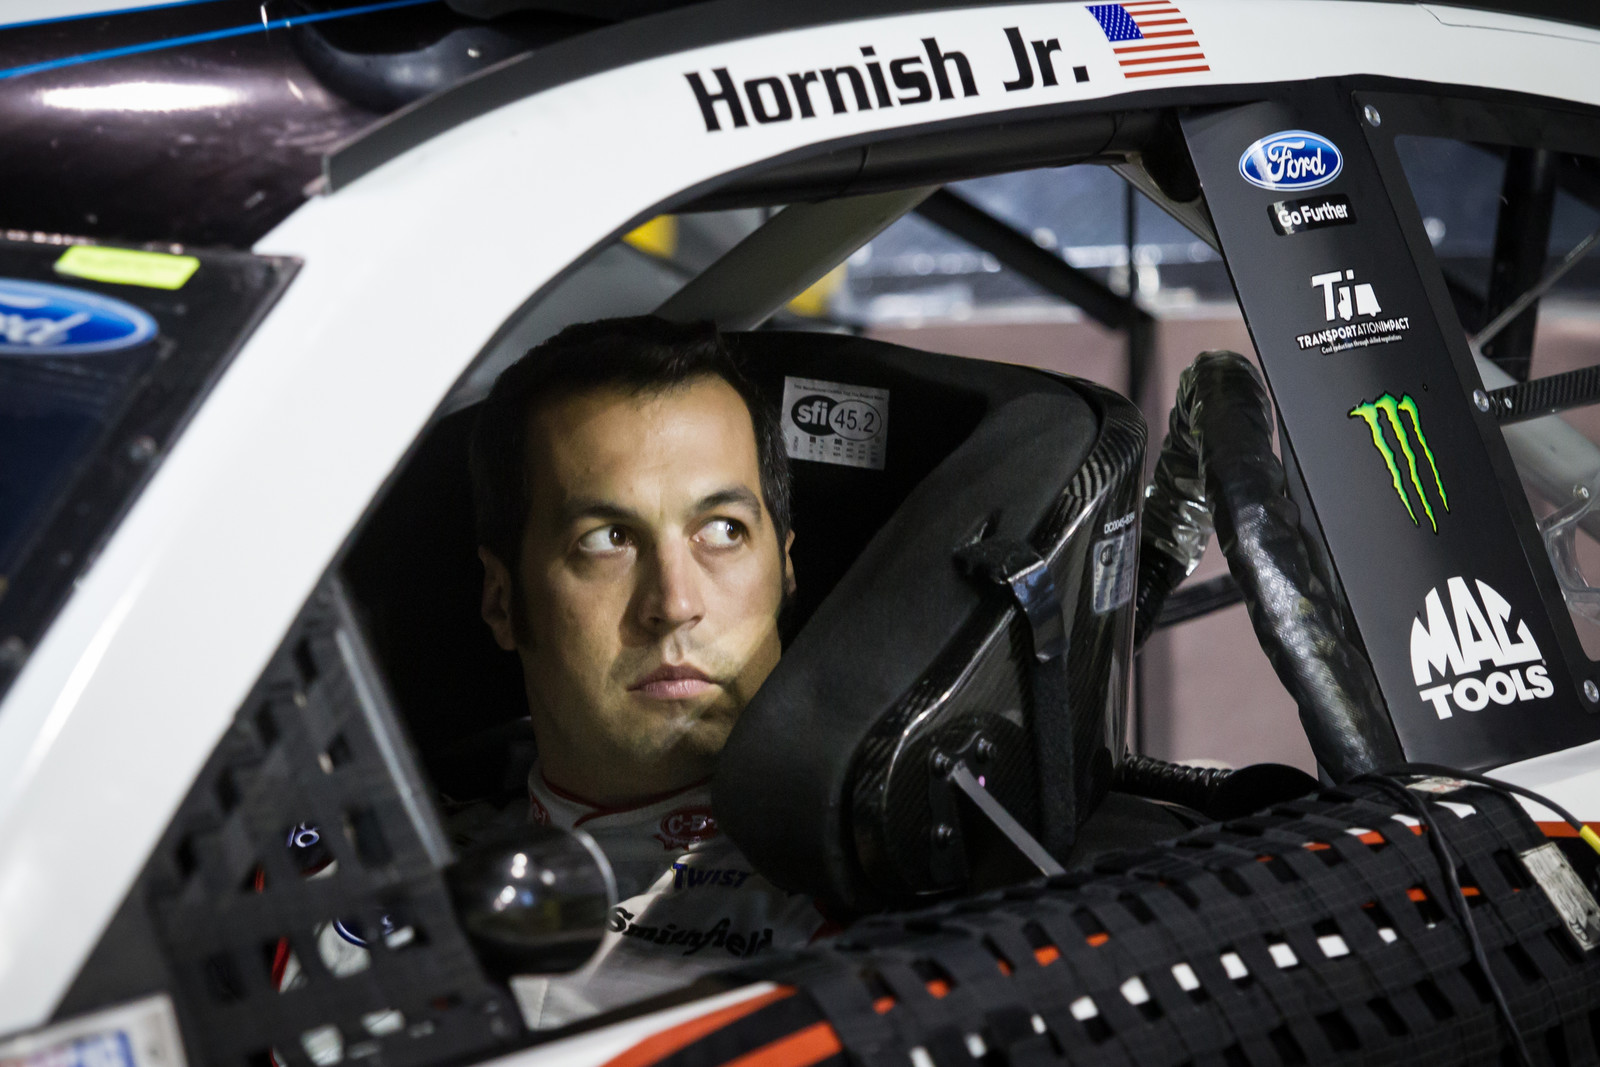 NASCAR Sprint Cup Series driver Sam Hornish Jr. straps into the Cheney Brothers Ford Fusion before the start of the Ford 400 at Homestead-Miami Speedway on November 22nd, 2015